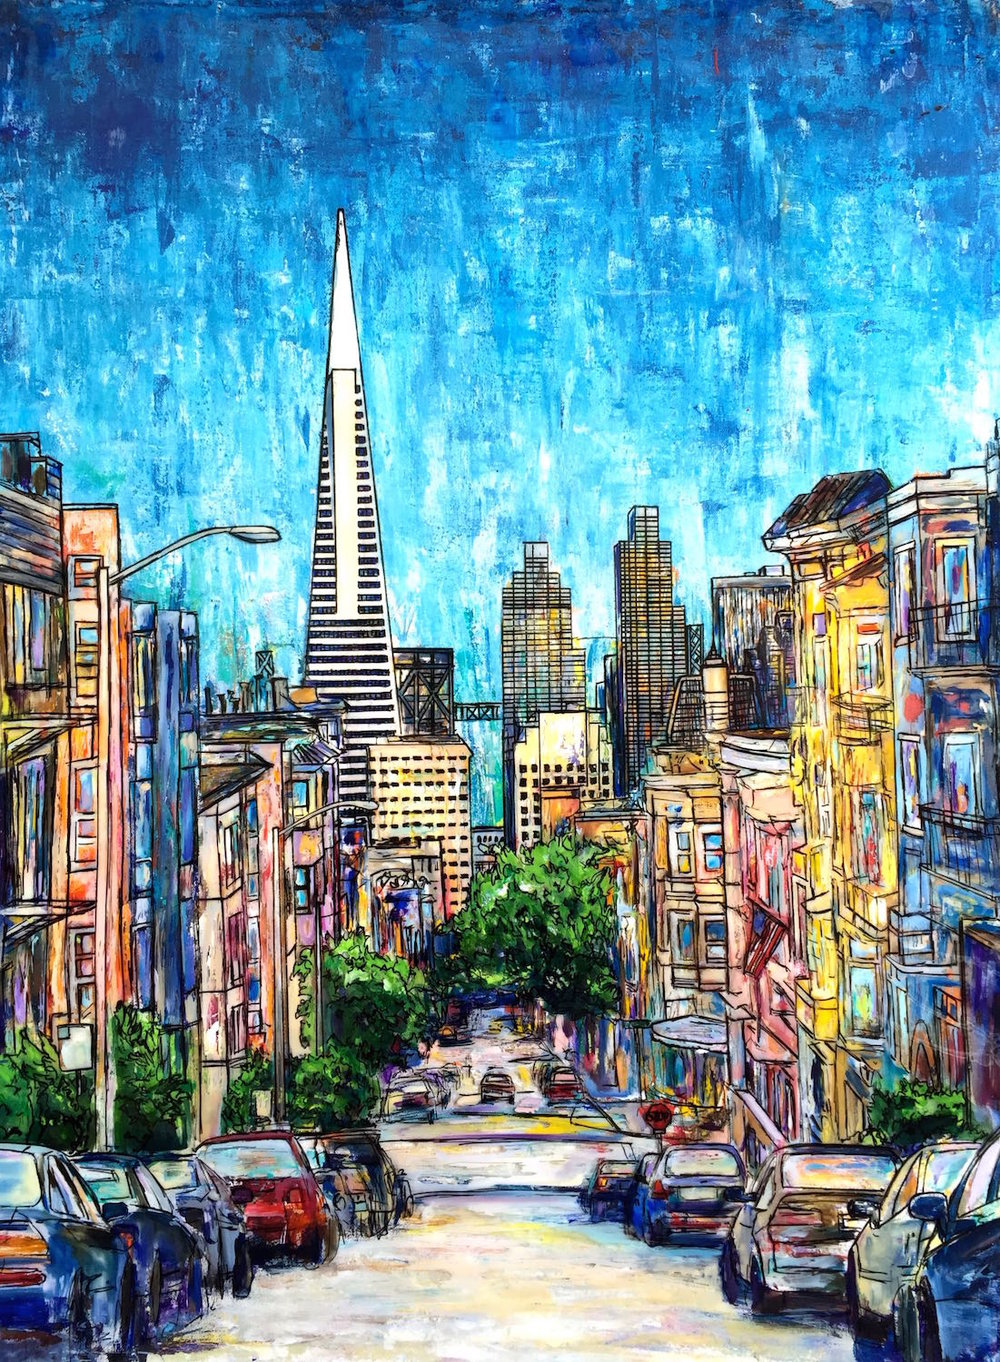 "CLAY AND JONES (SAN FRANCISCO)   30 x 40""   Acrylic, acetate, ink, and epoxy resin on canvas   PRINTS AVAILABLE / ORIGINAL AVAILABLE"